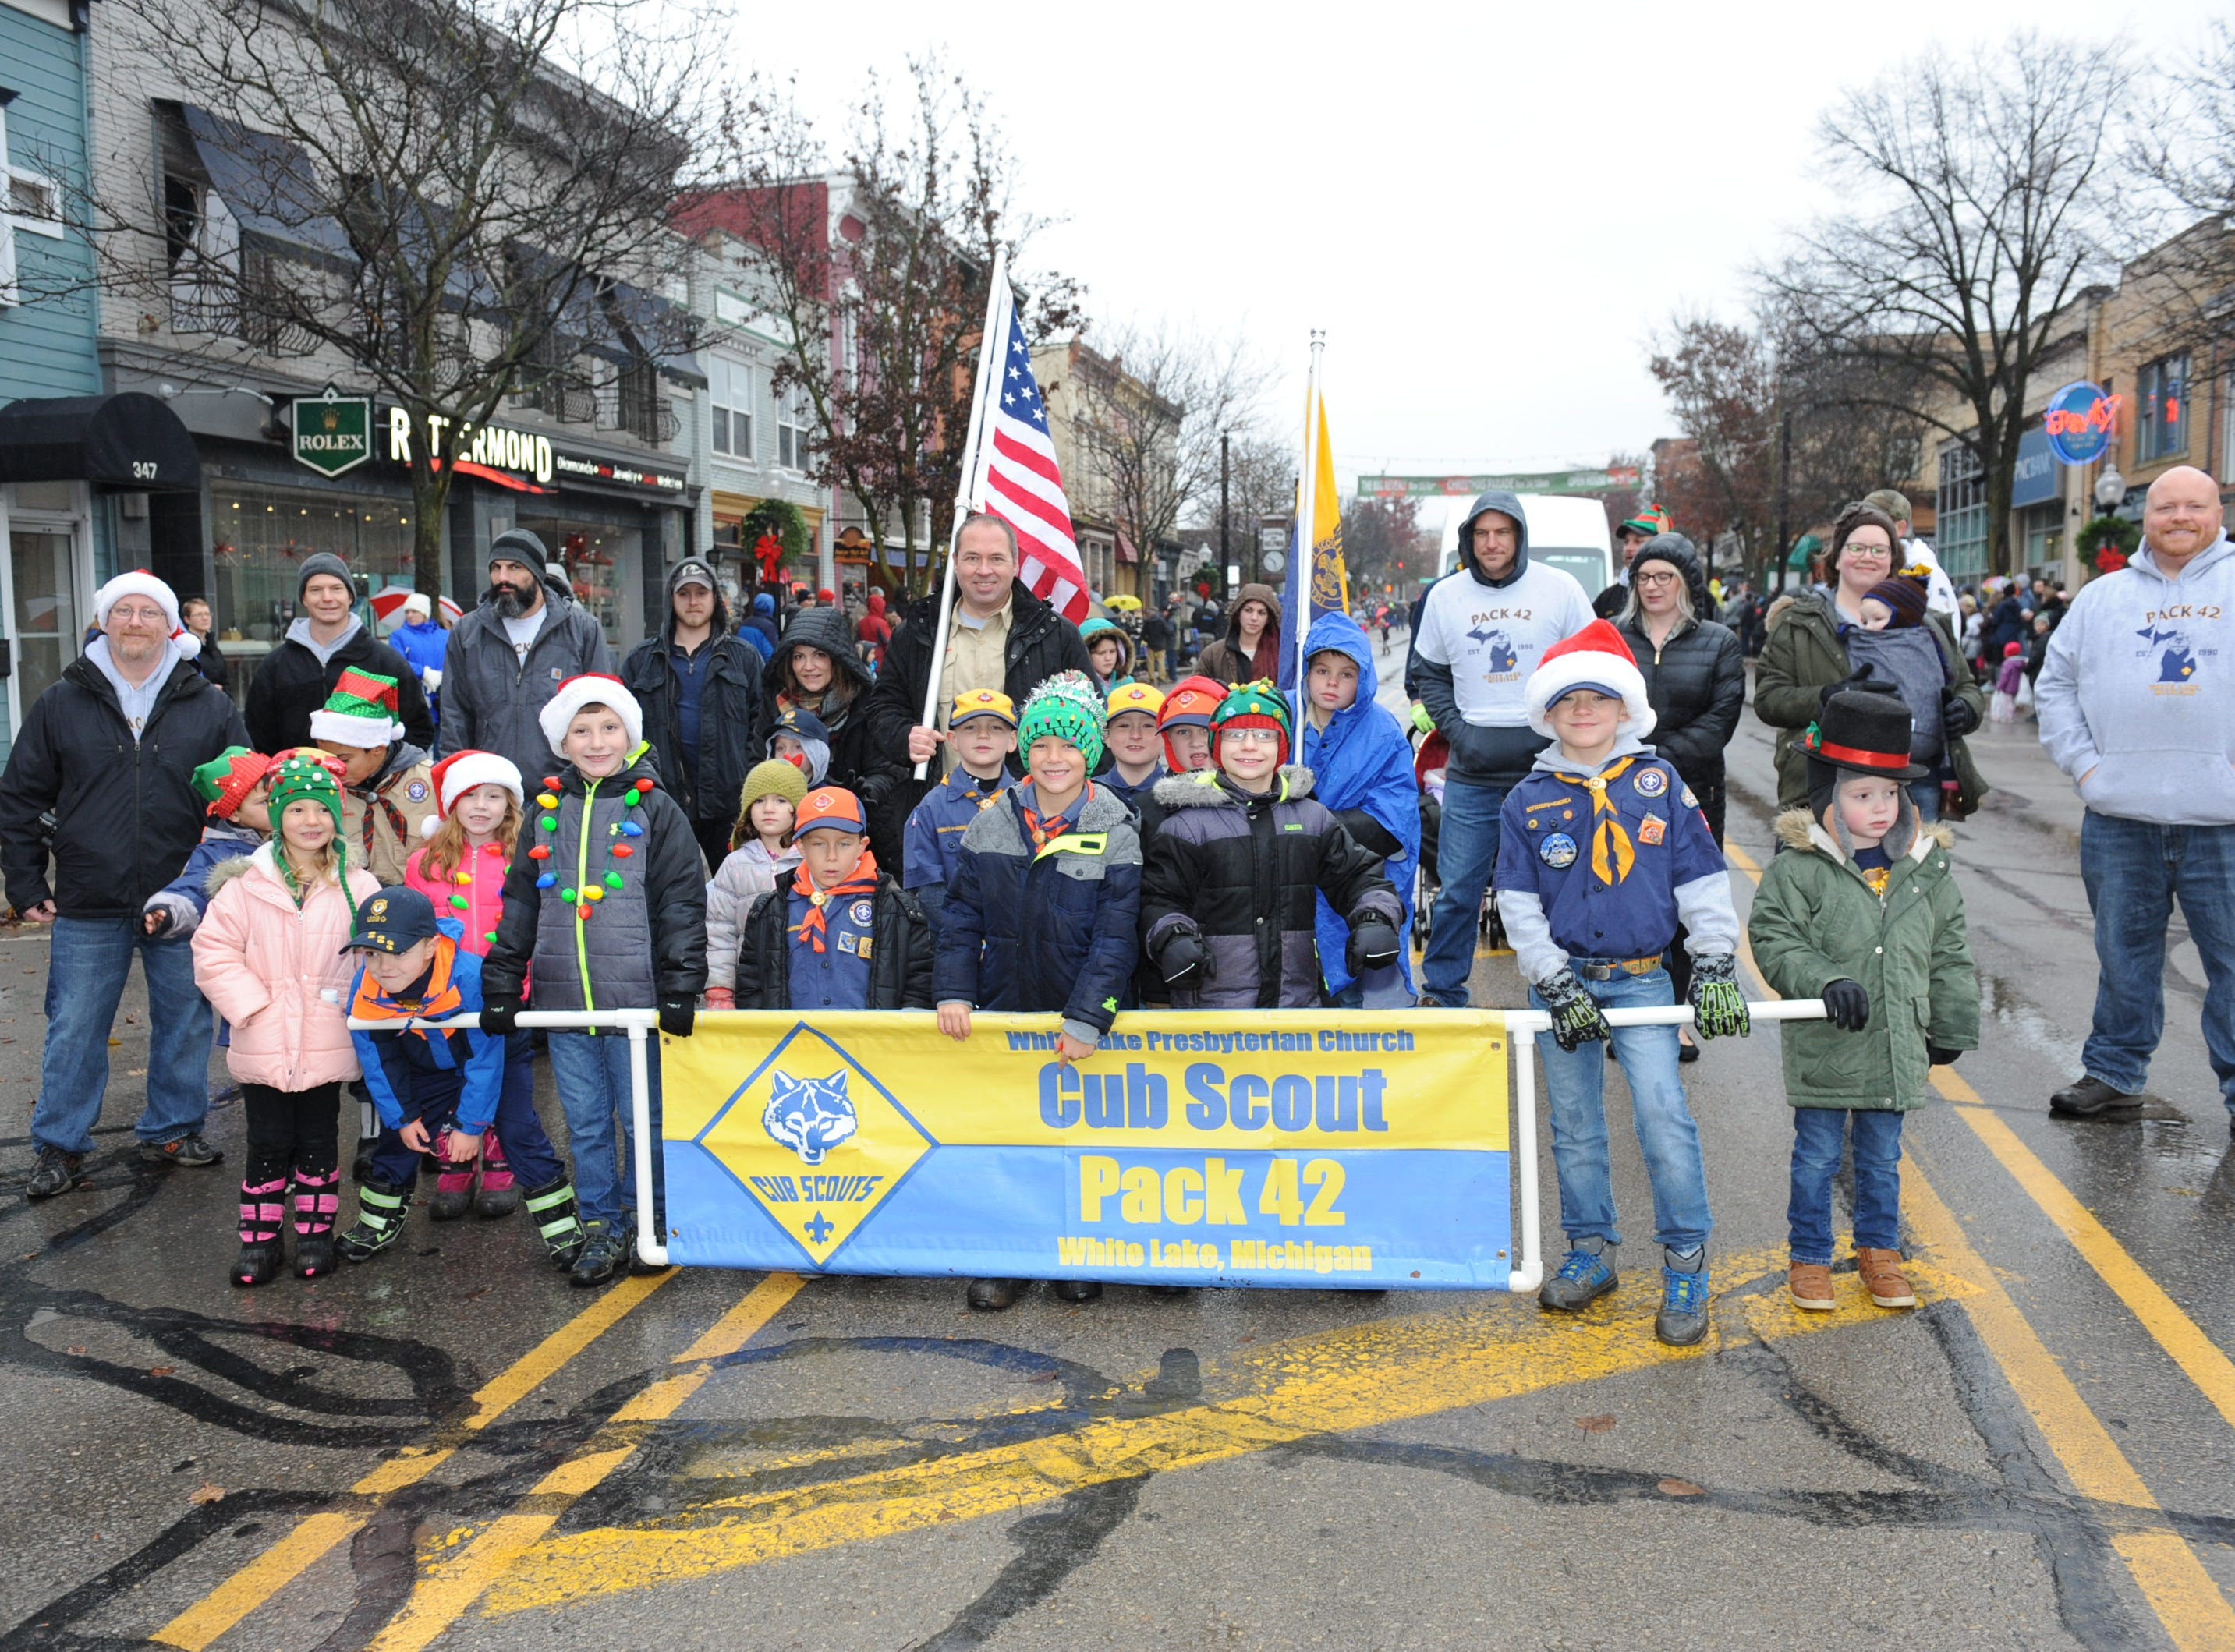 Cub Scout Pack #42 marches in the annual parade held in Milford.